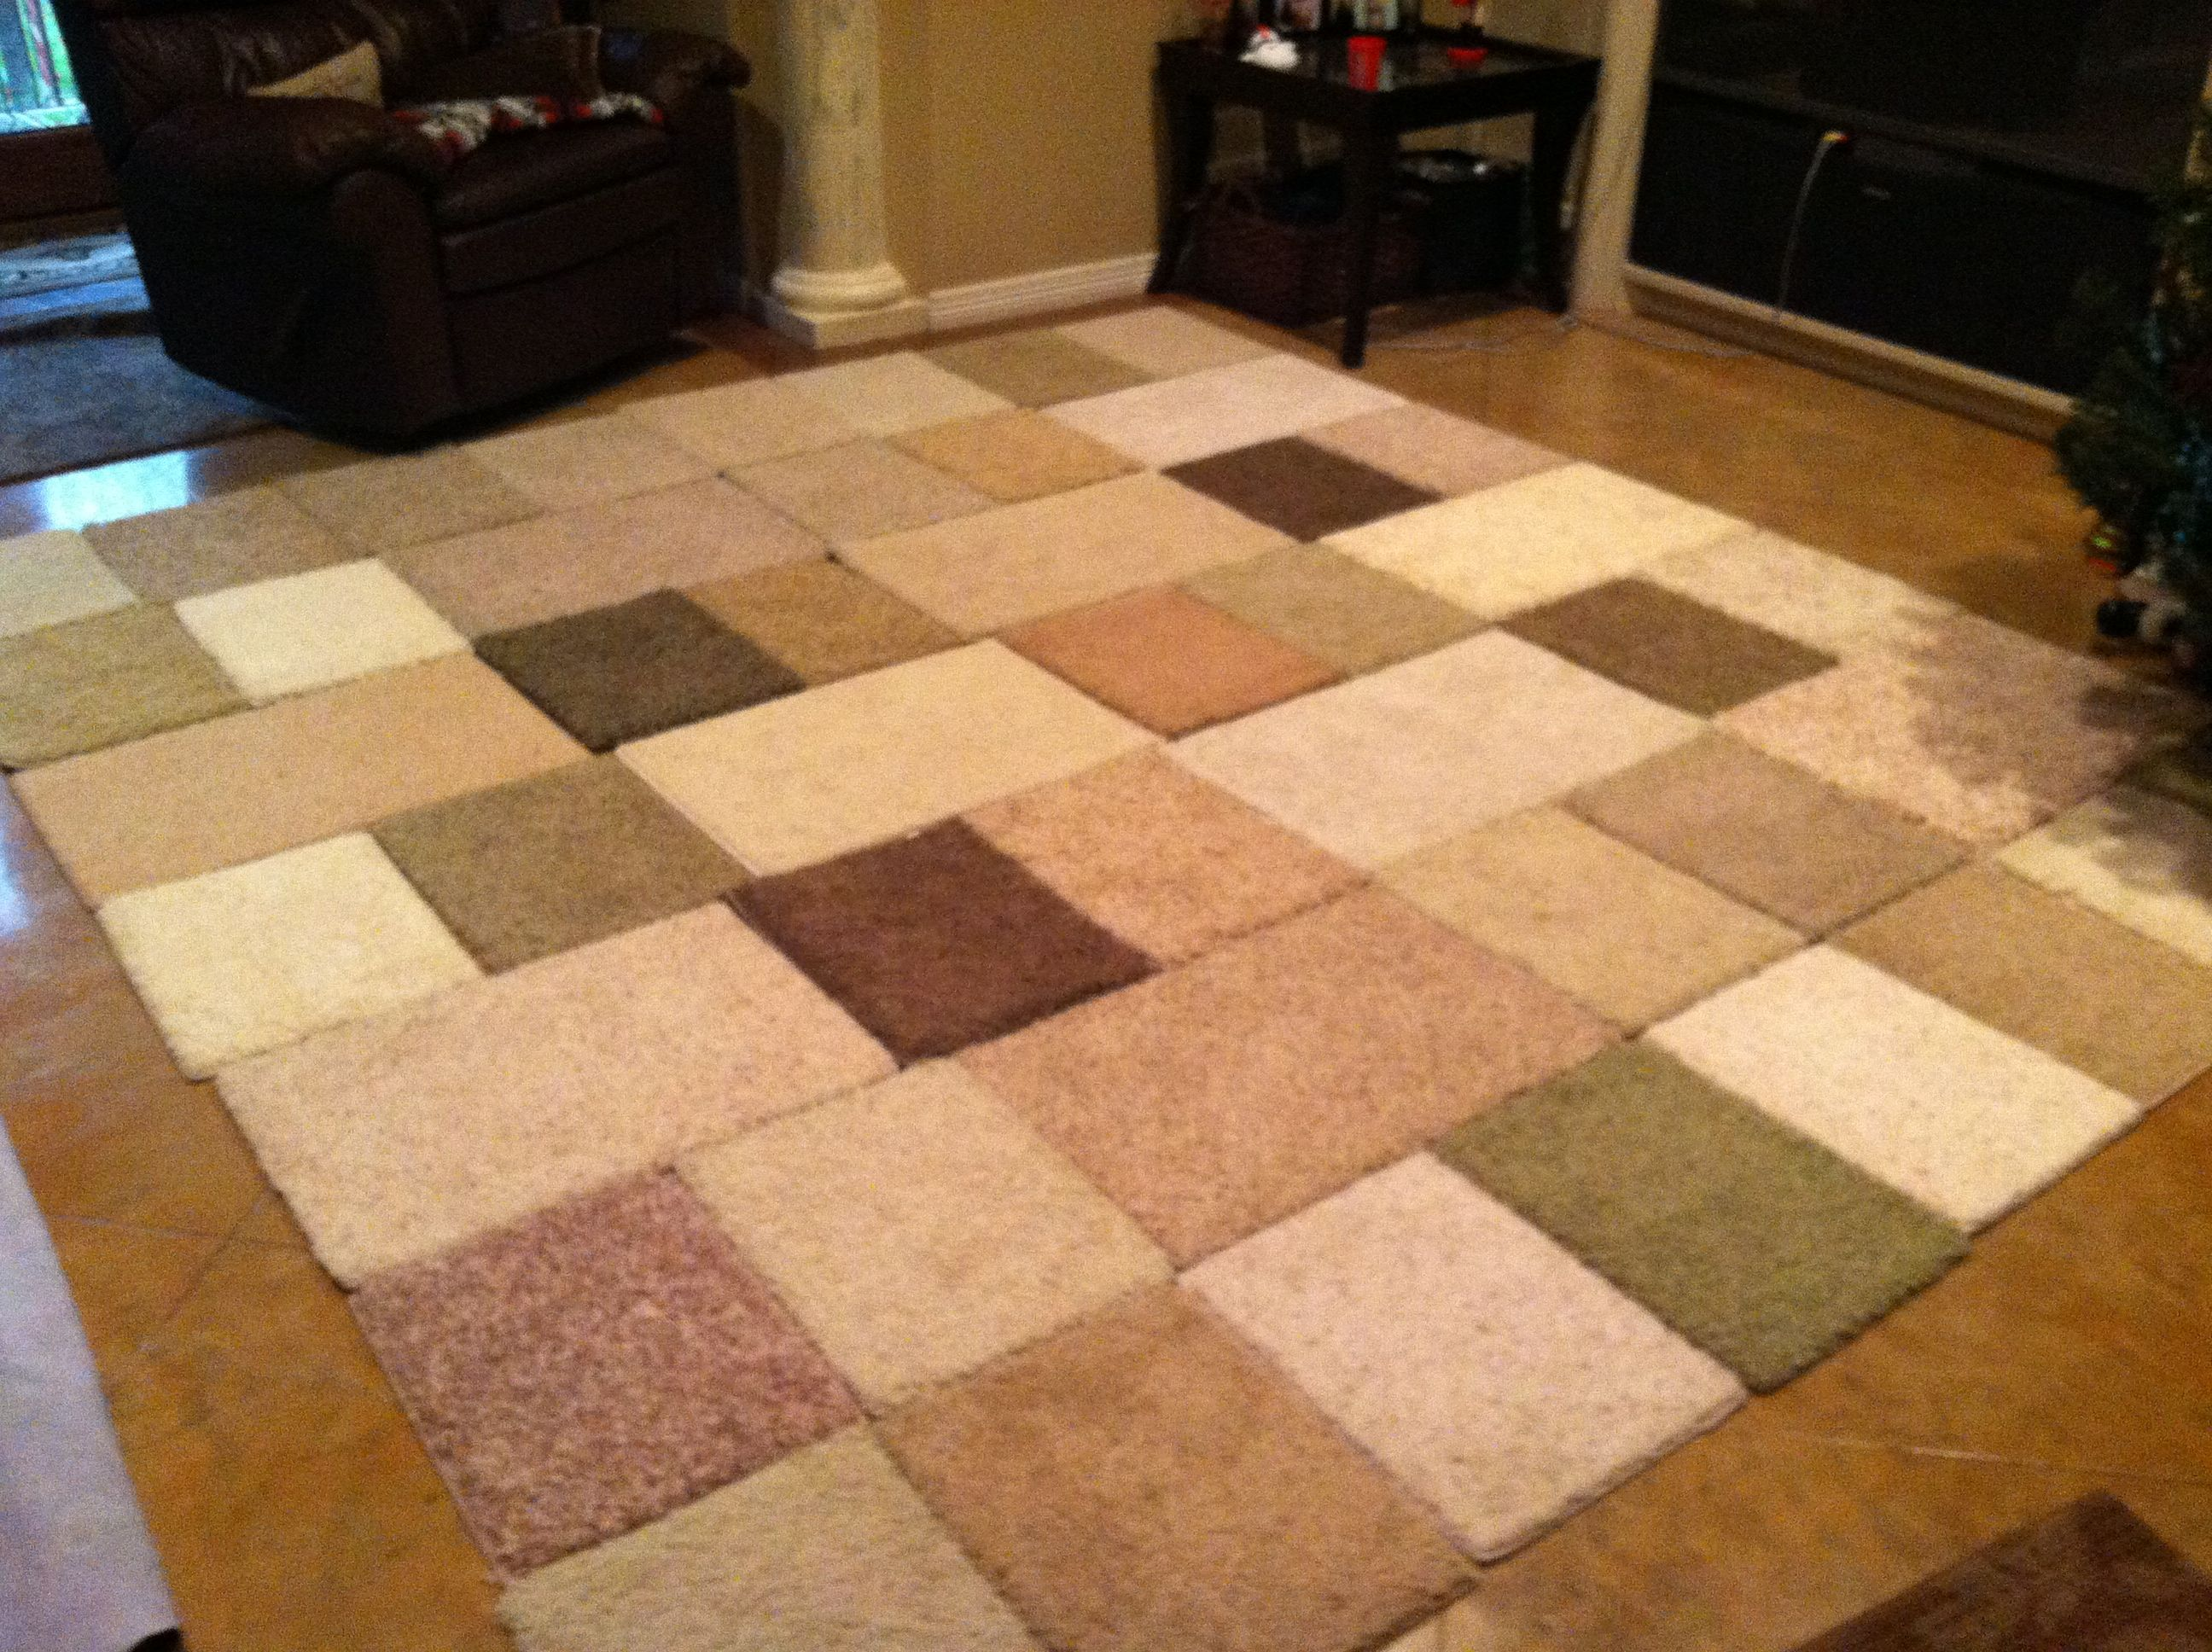 Diy Area Rug Made From Carpet Samples And Duck Tape 10ft X 9ft